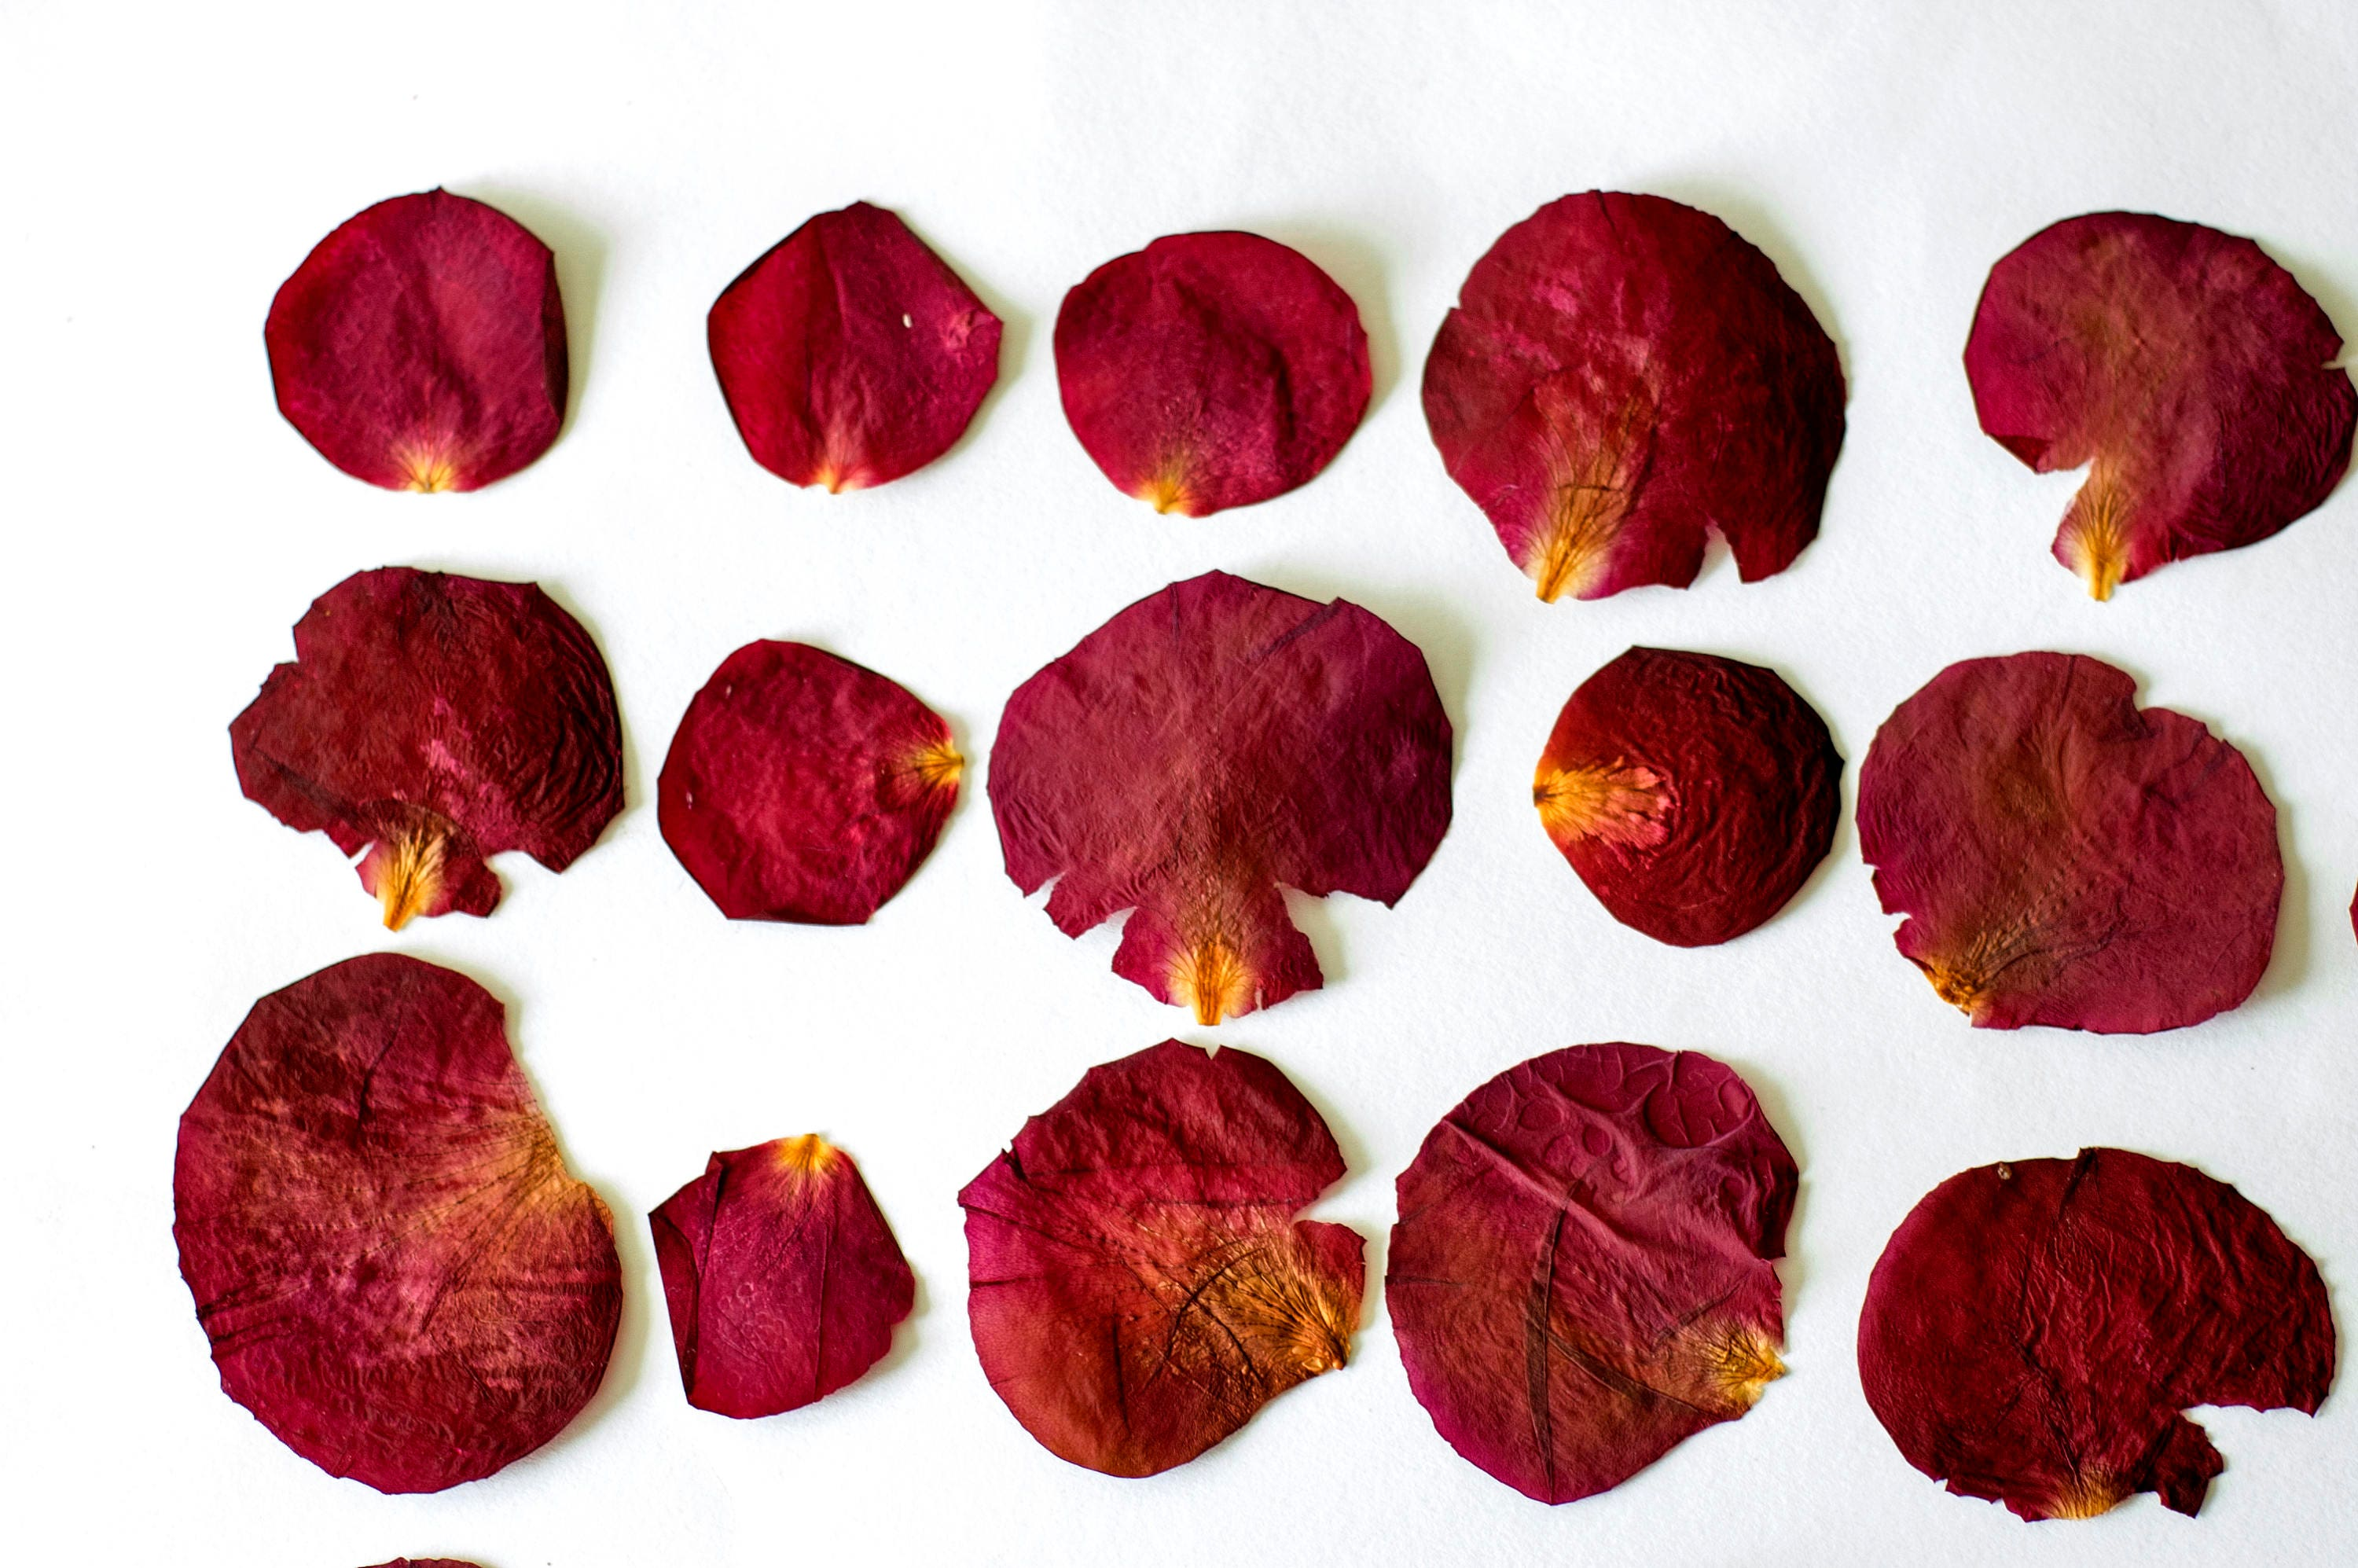 35 dried pressed rose petals. Red Dried Pressed Flowers for Crafting ...